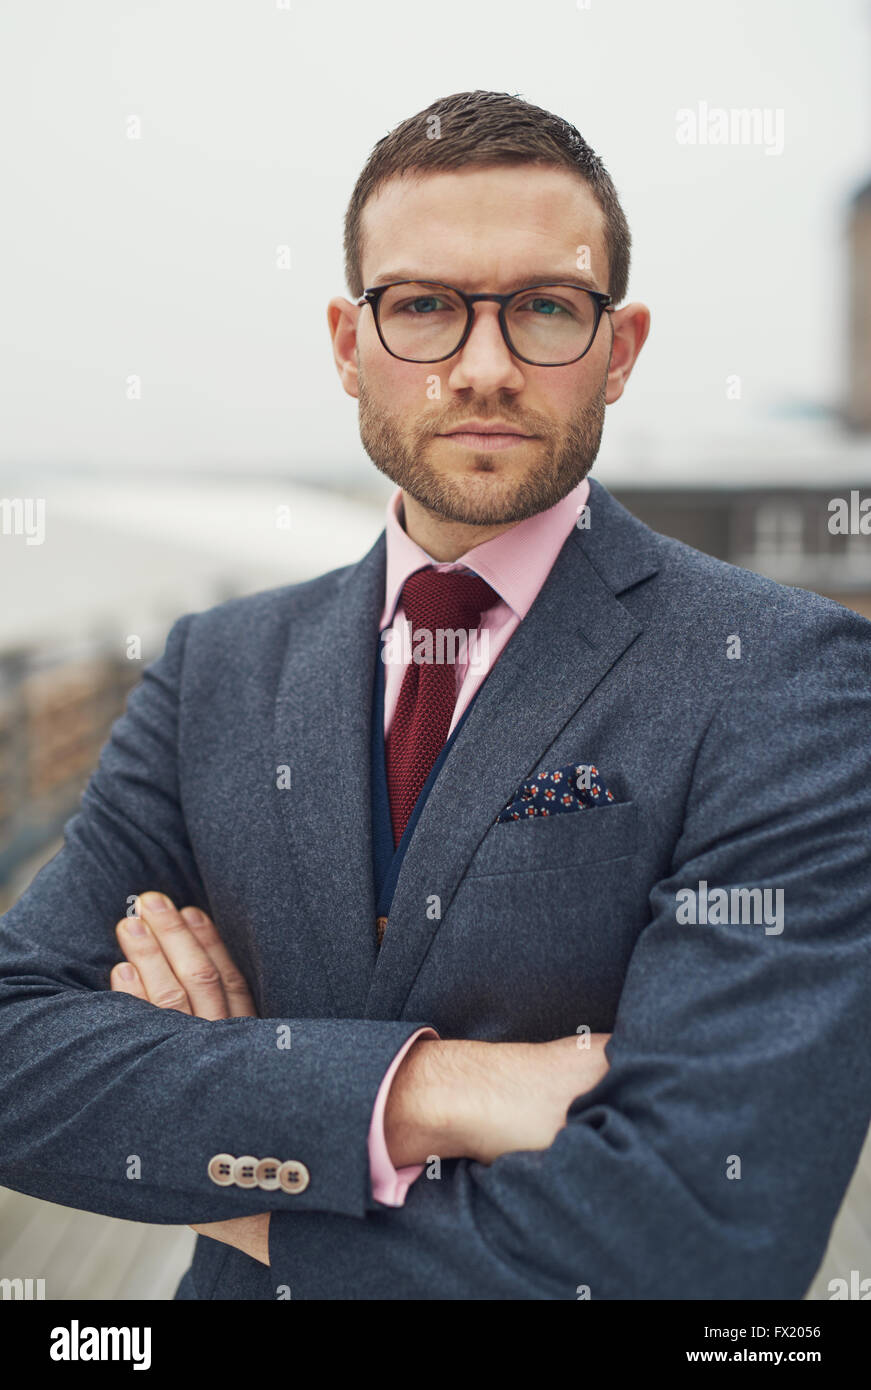 Serious determined young business man wearing glasses standing with folded arms looking at the camera with a pensive - Stock Image